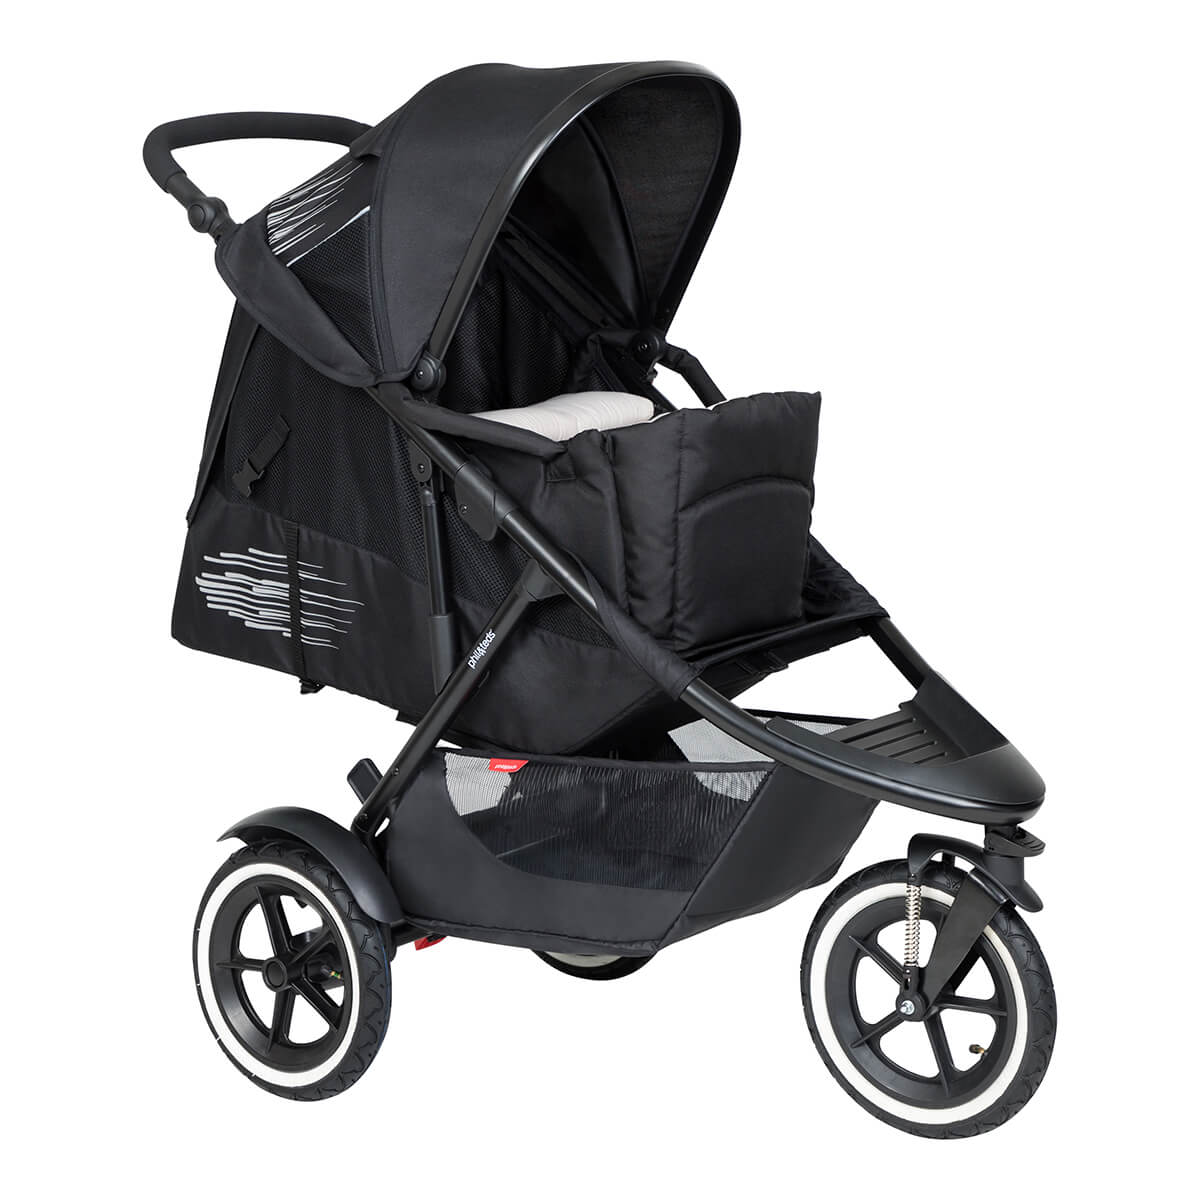 https://cdn.accentuate.io/4509528096856/19272668119128/philteds-sport-buggy-with-cocoon-full-recline-v1626484416132.jpg?1200x1200